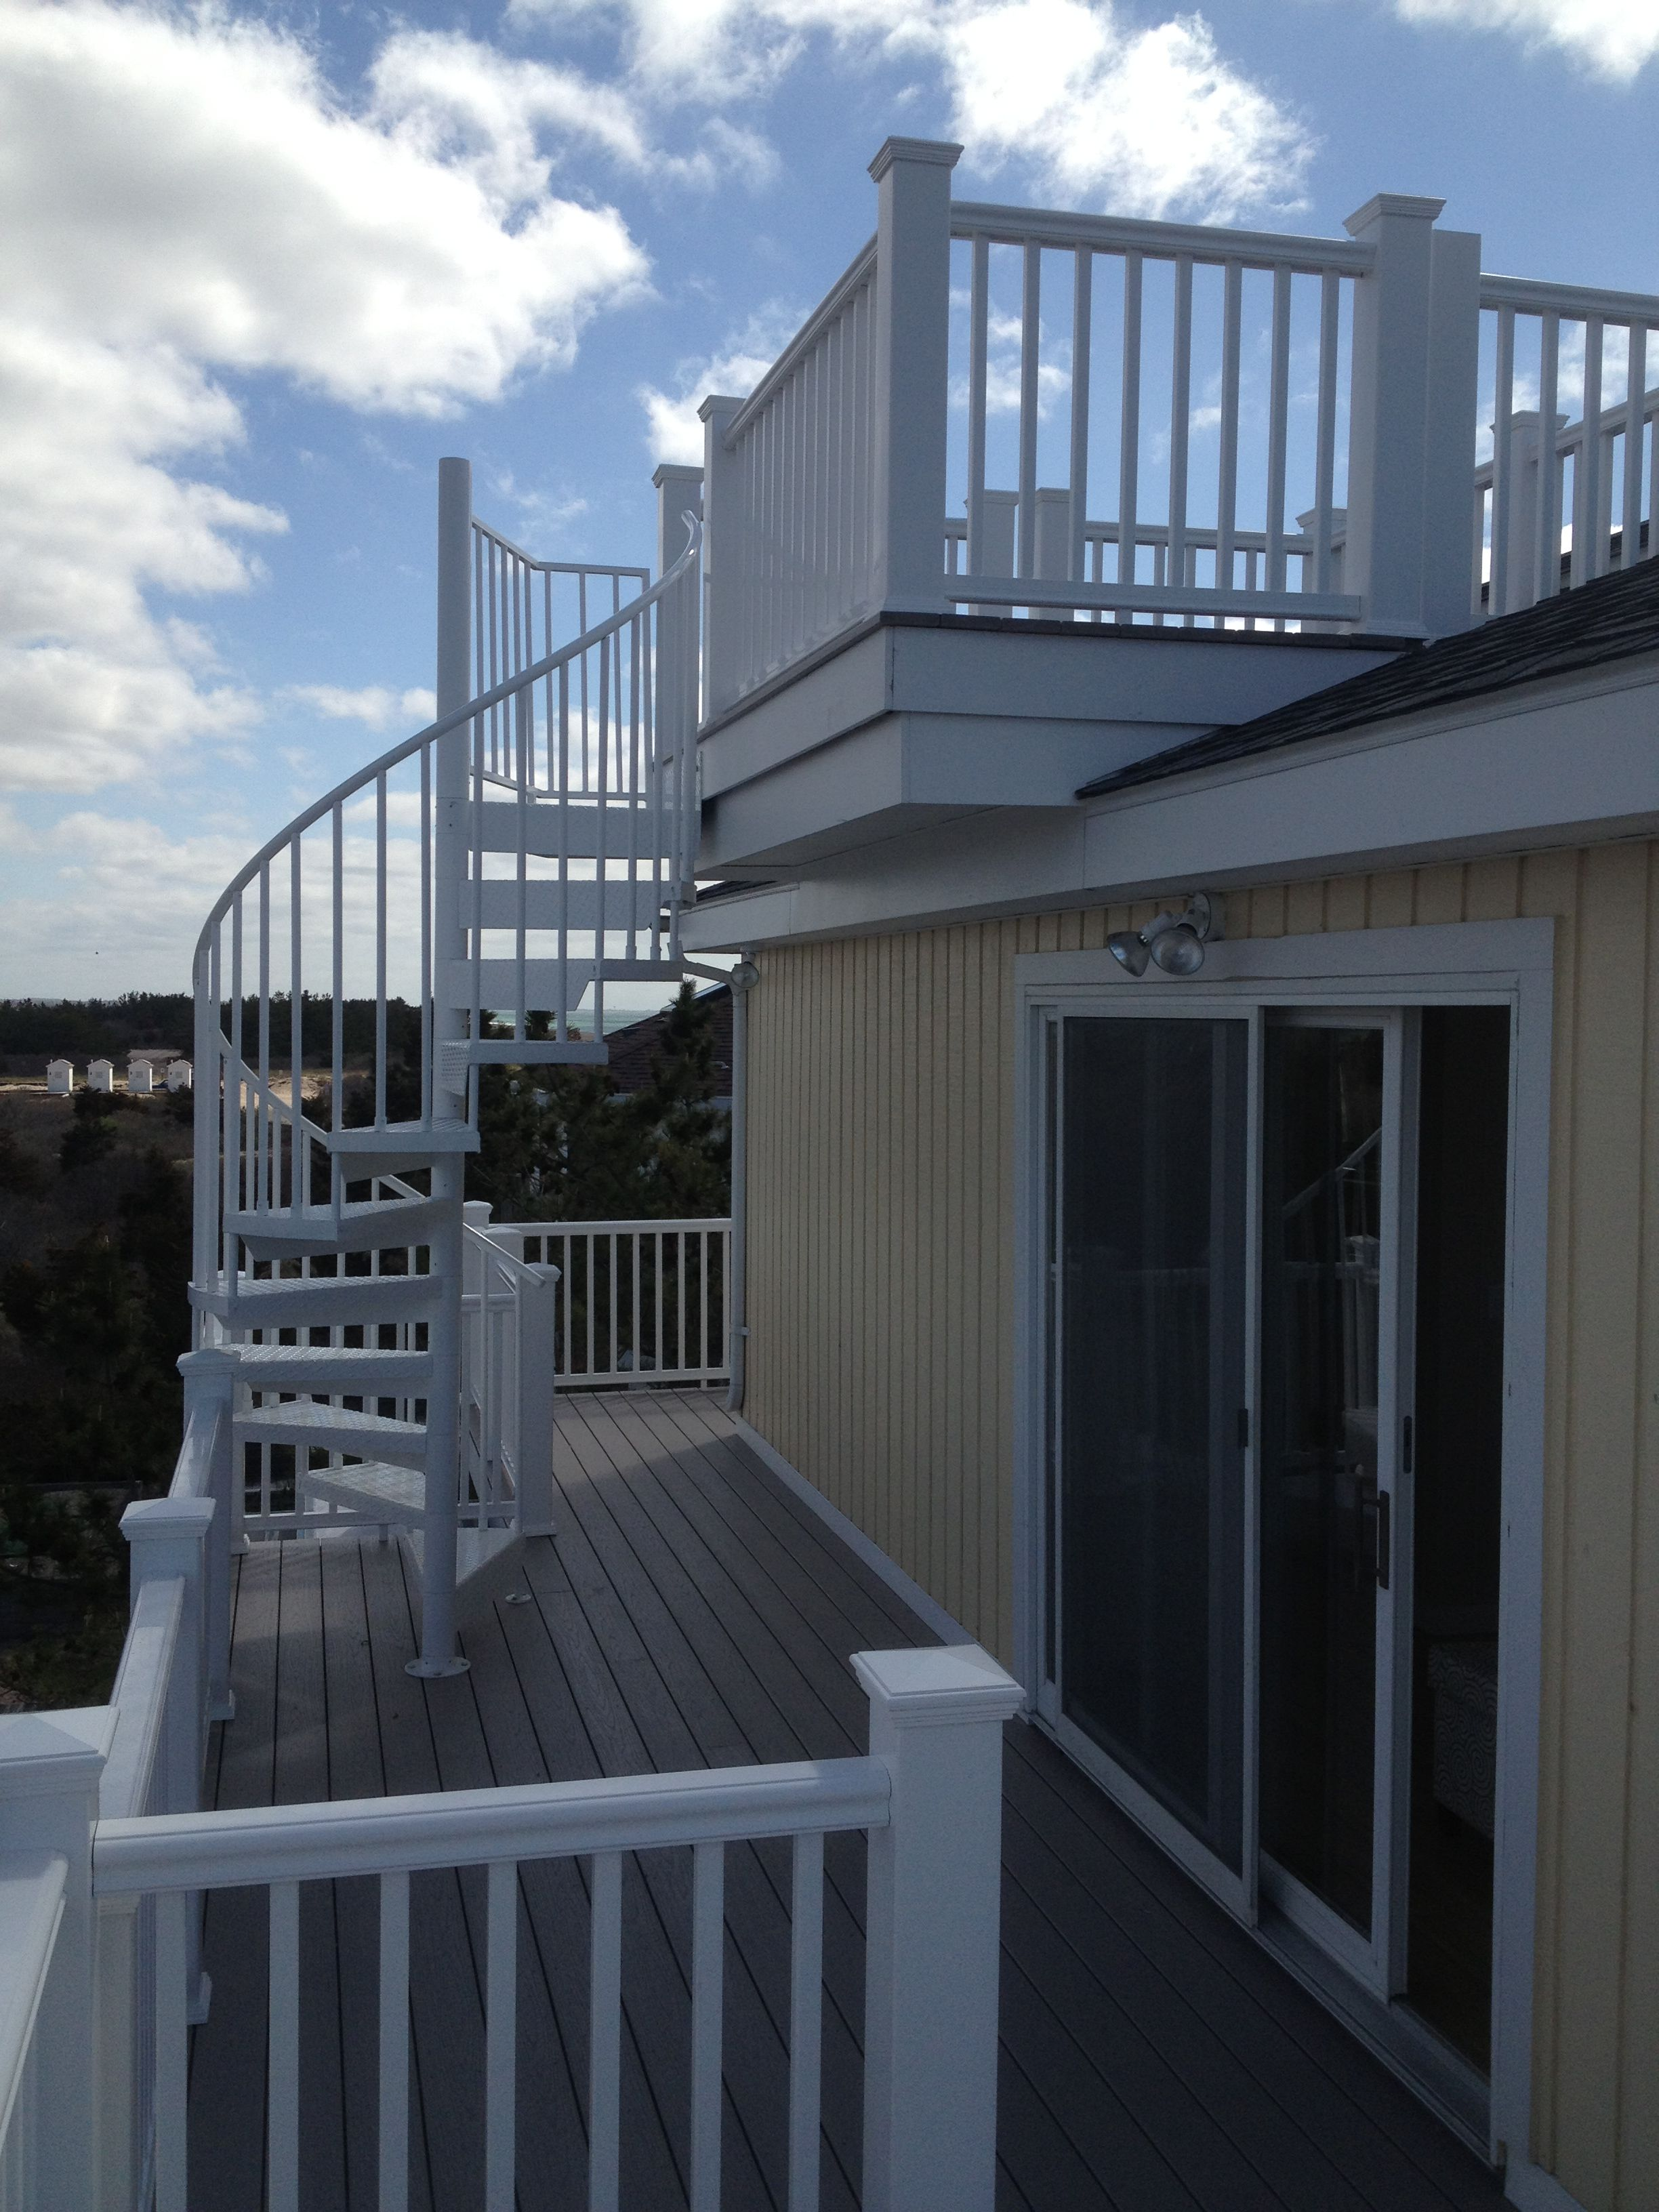 Aluminum Powder Coated Spiral Stair From A Rooftop Deck Stairs | 36 Inch Spiral Staircase | Stair Case | Steel | Steps | Tread Depth | Handrail